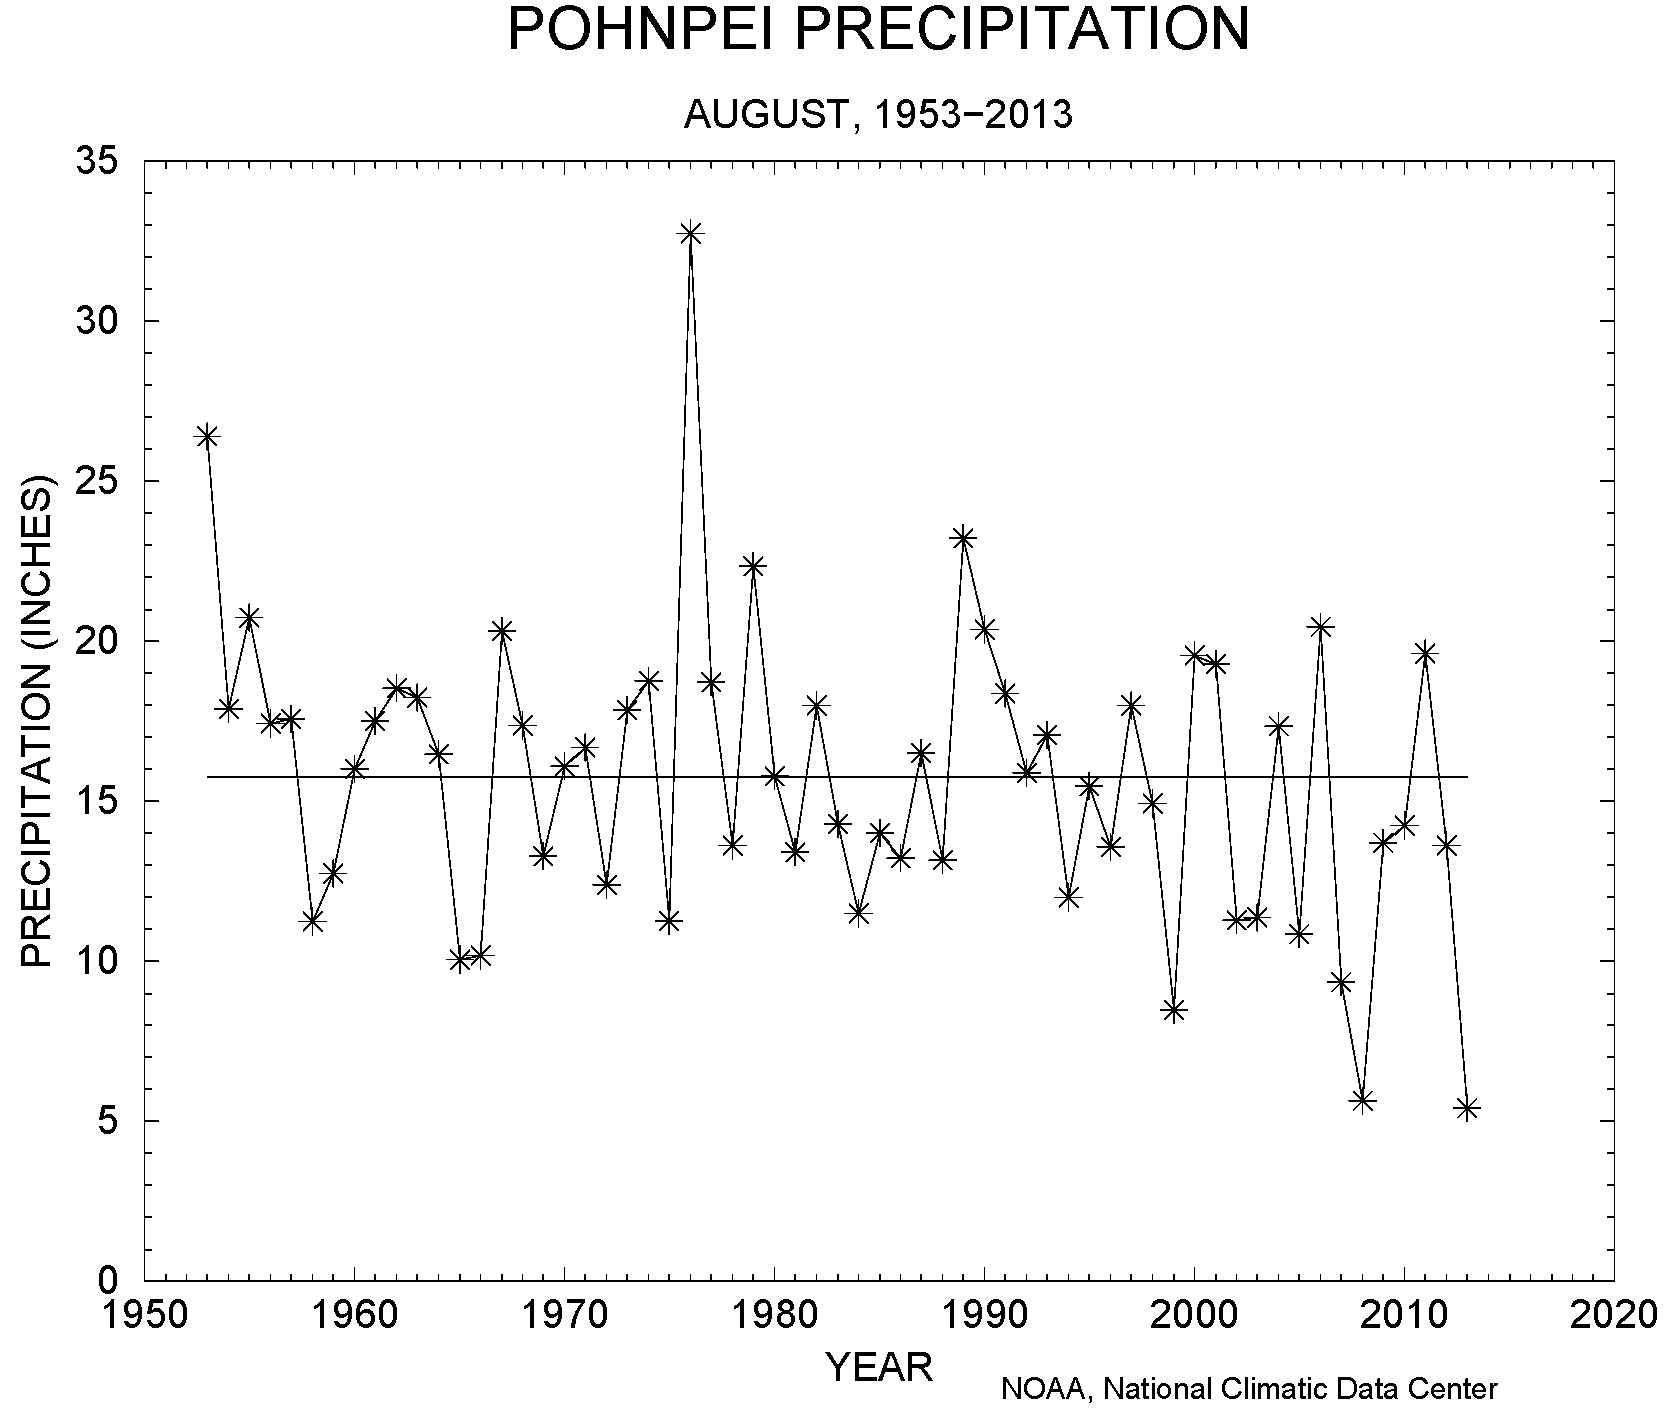 Pohnpei precipitation, August, 1953-2013